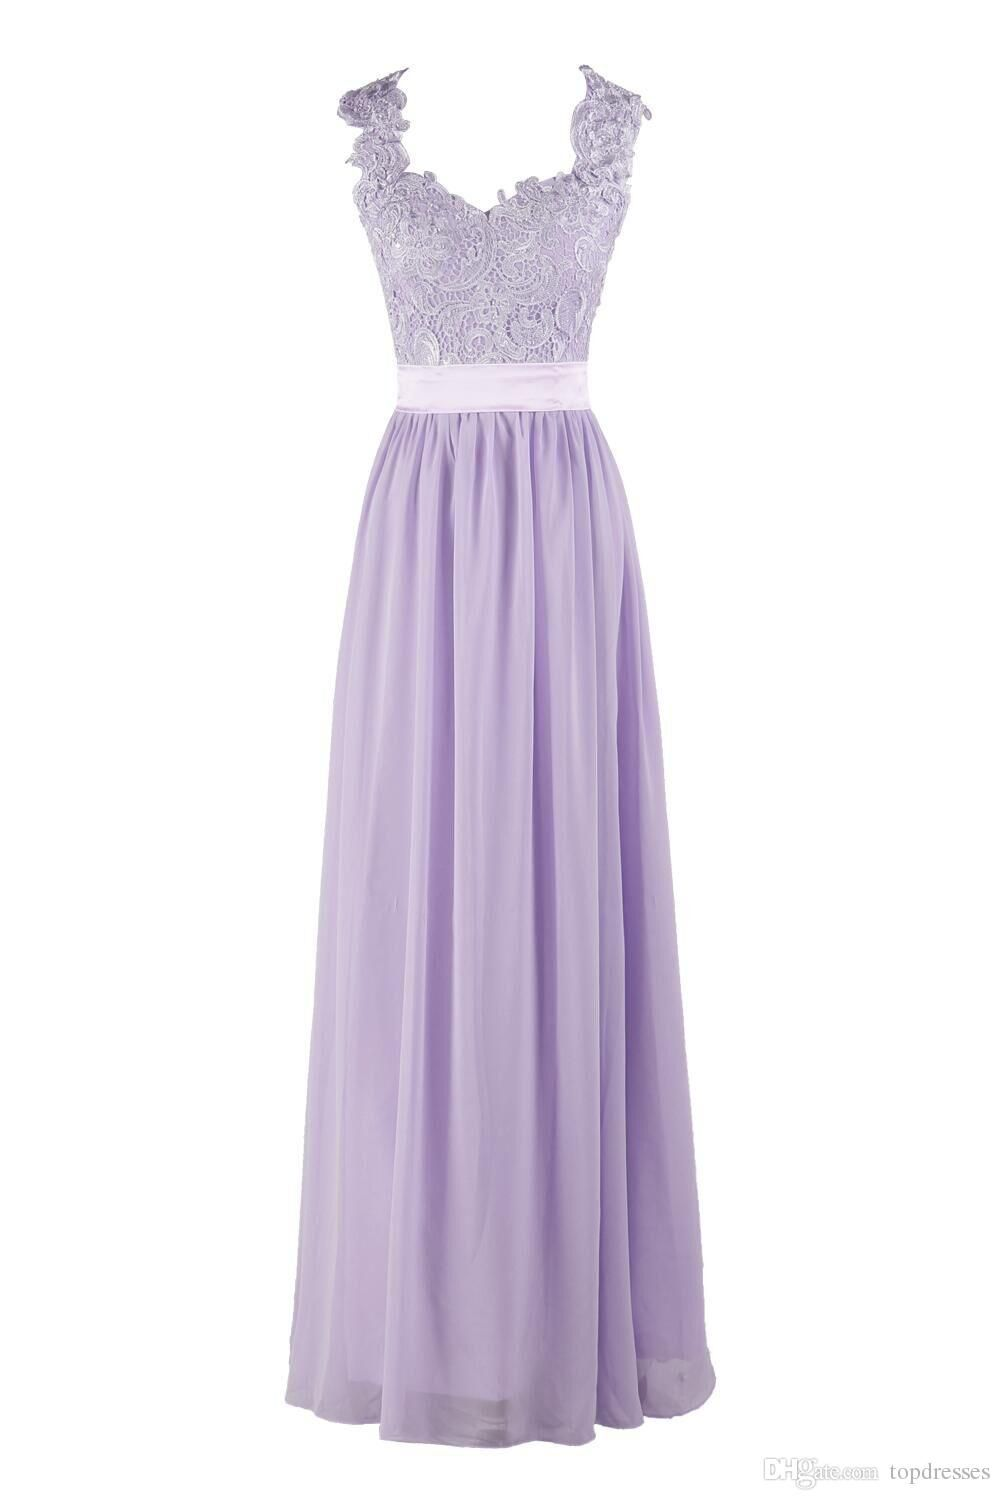 Purple Bridesmaid Dresses | Lace gowns, Style and Gowns